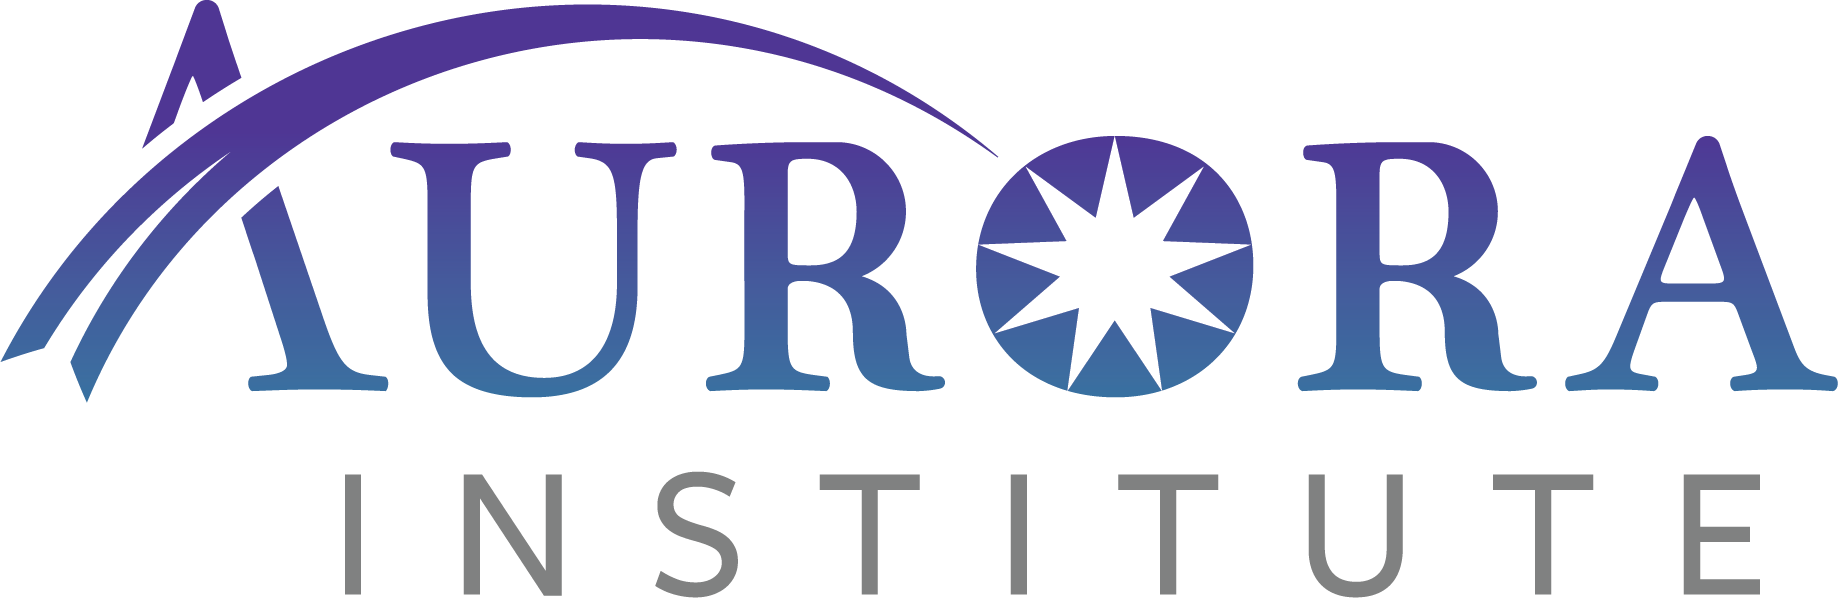 Aurora-Institute-Master-File-hi